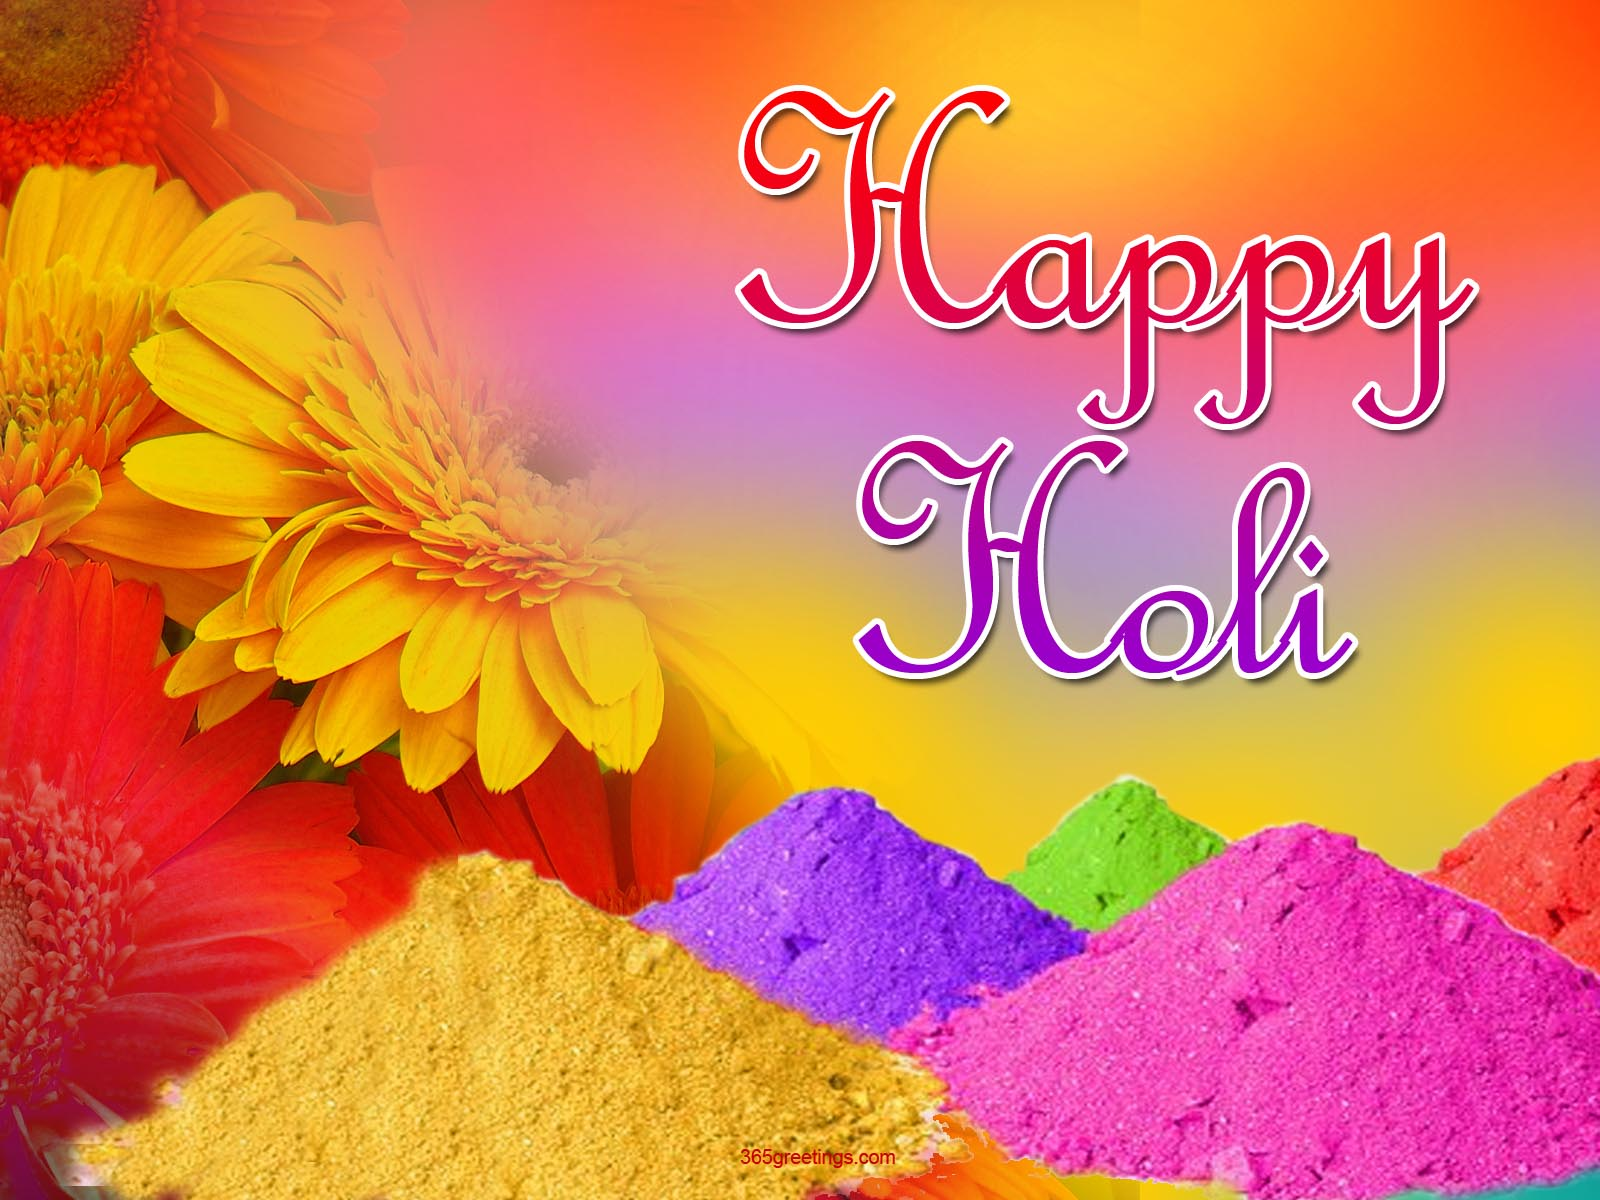 http://3.bp.blogspot.com/-hhzQ4zj22Ag/T1eH795fL1I/AAAAAAAAAXE/AubfsxV82UA/s1600/Happy-Holi-Latest-HD-Wallpapers-2012+%25284%2529.jpg